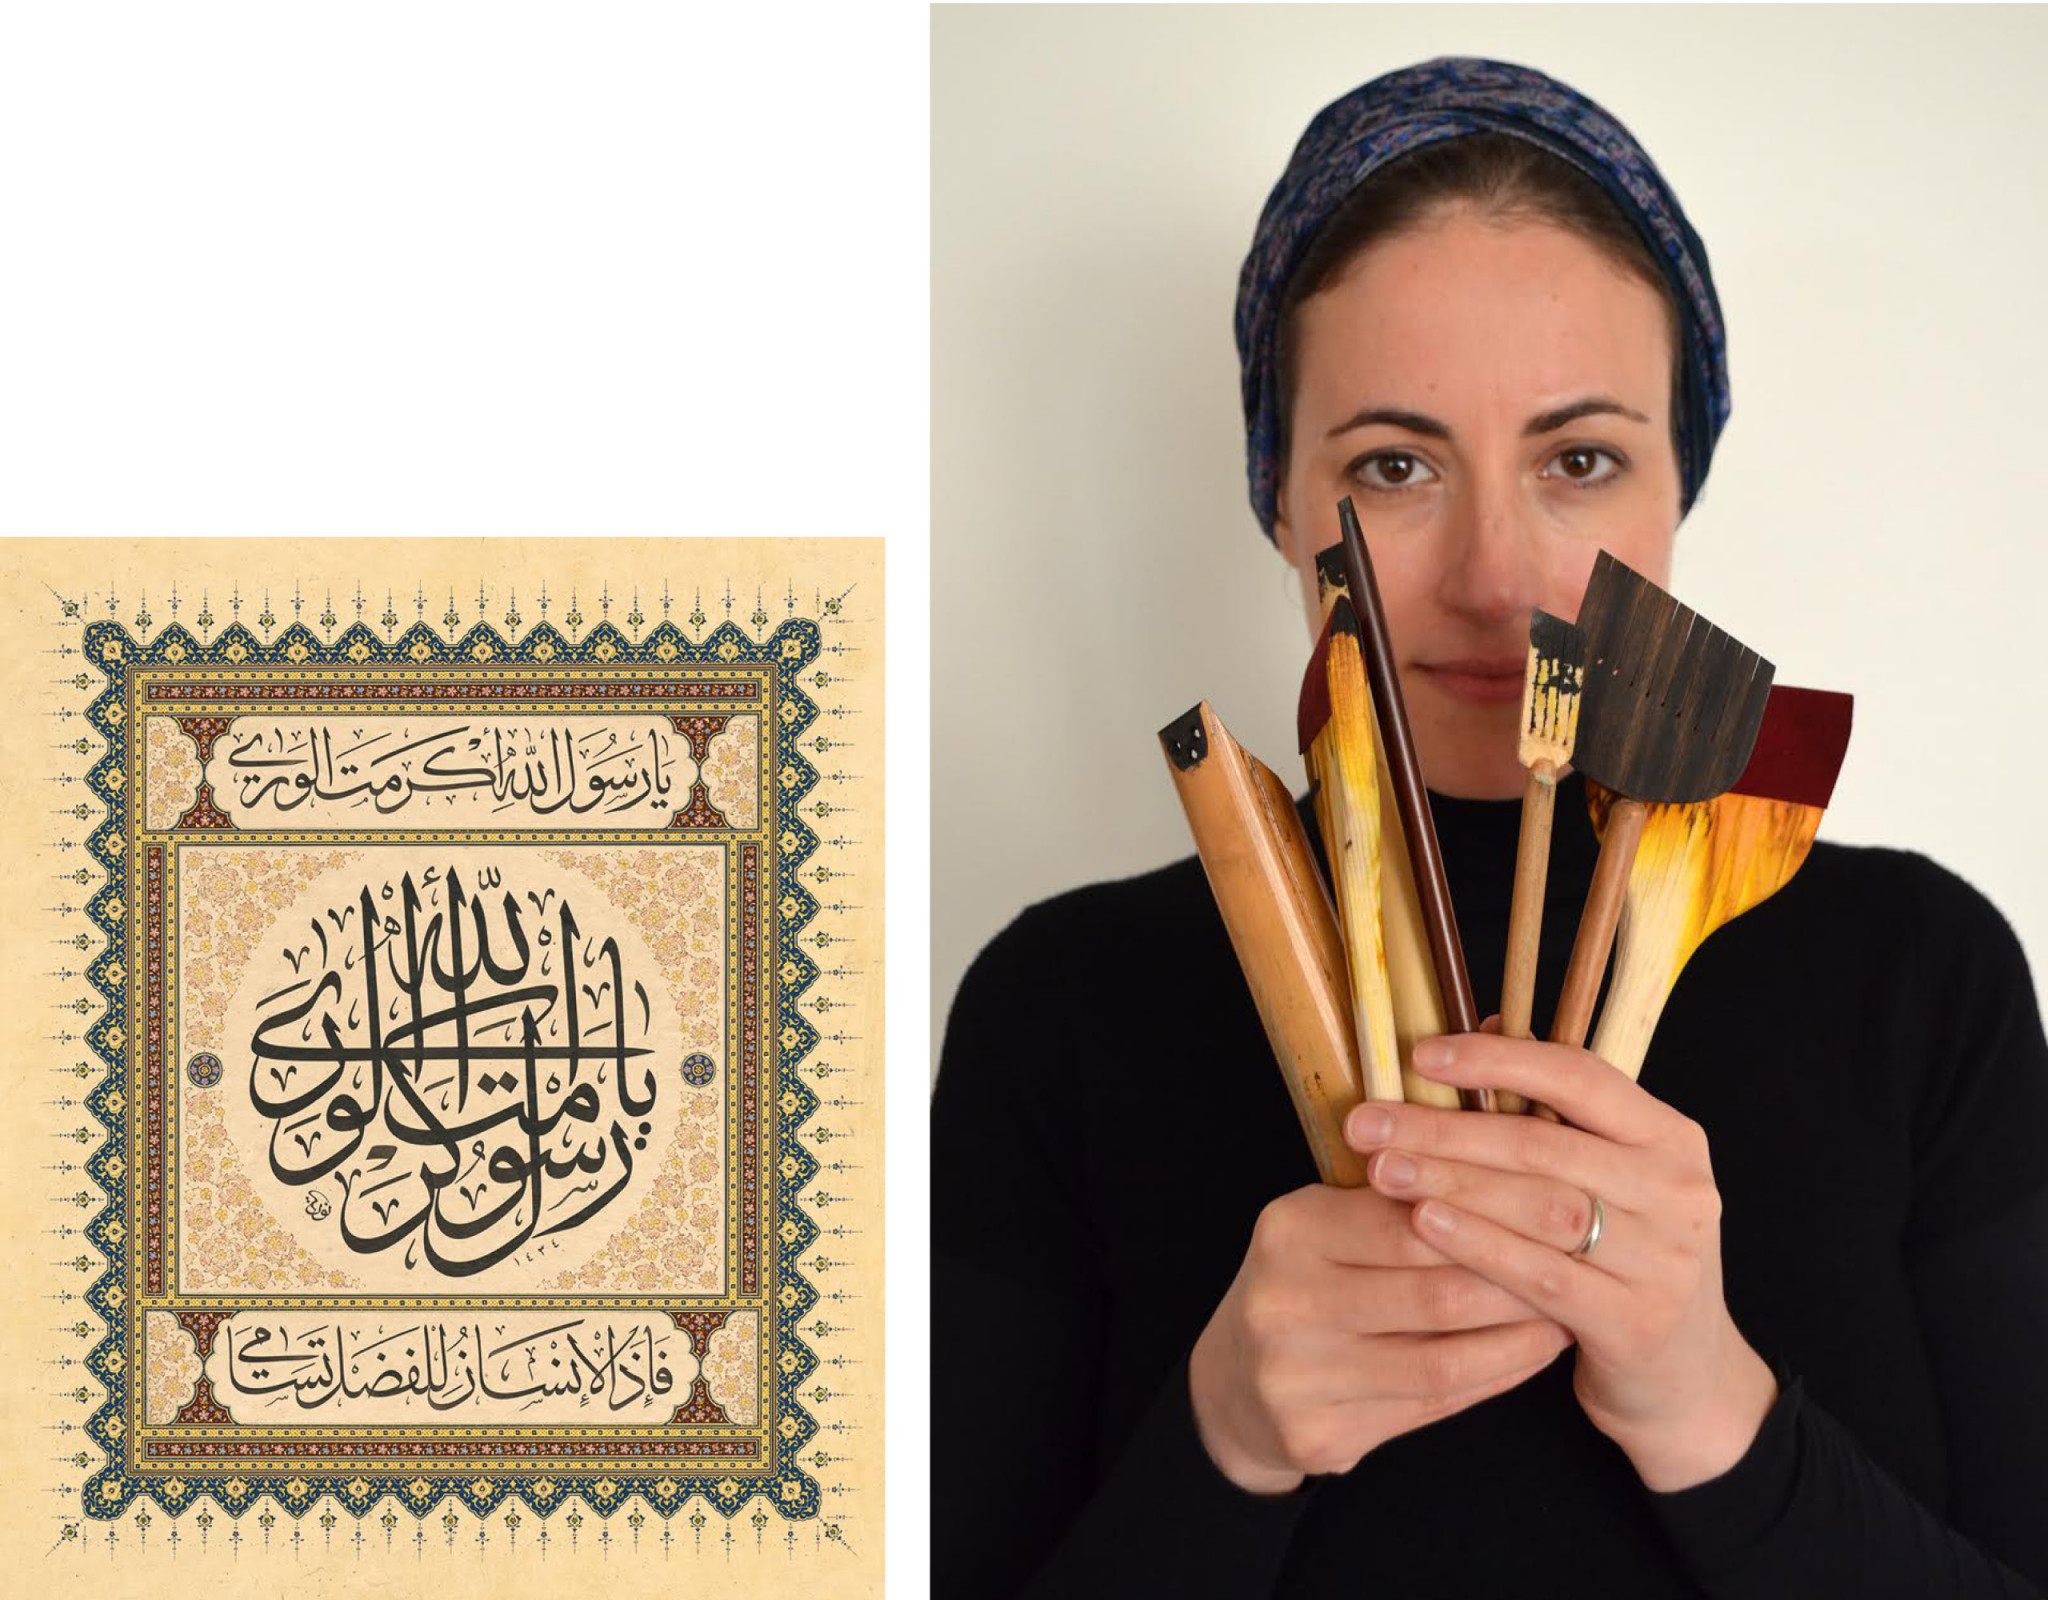 Two images: Work by the artist and the artist holding pencils